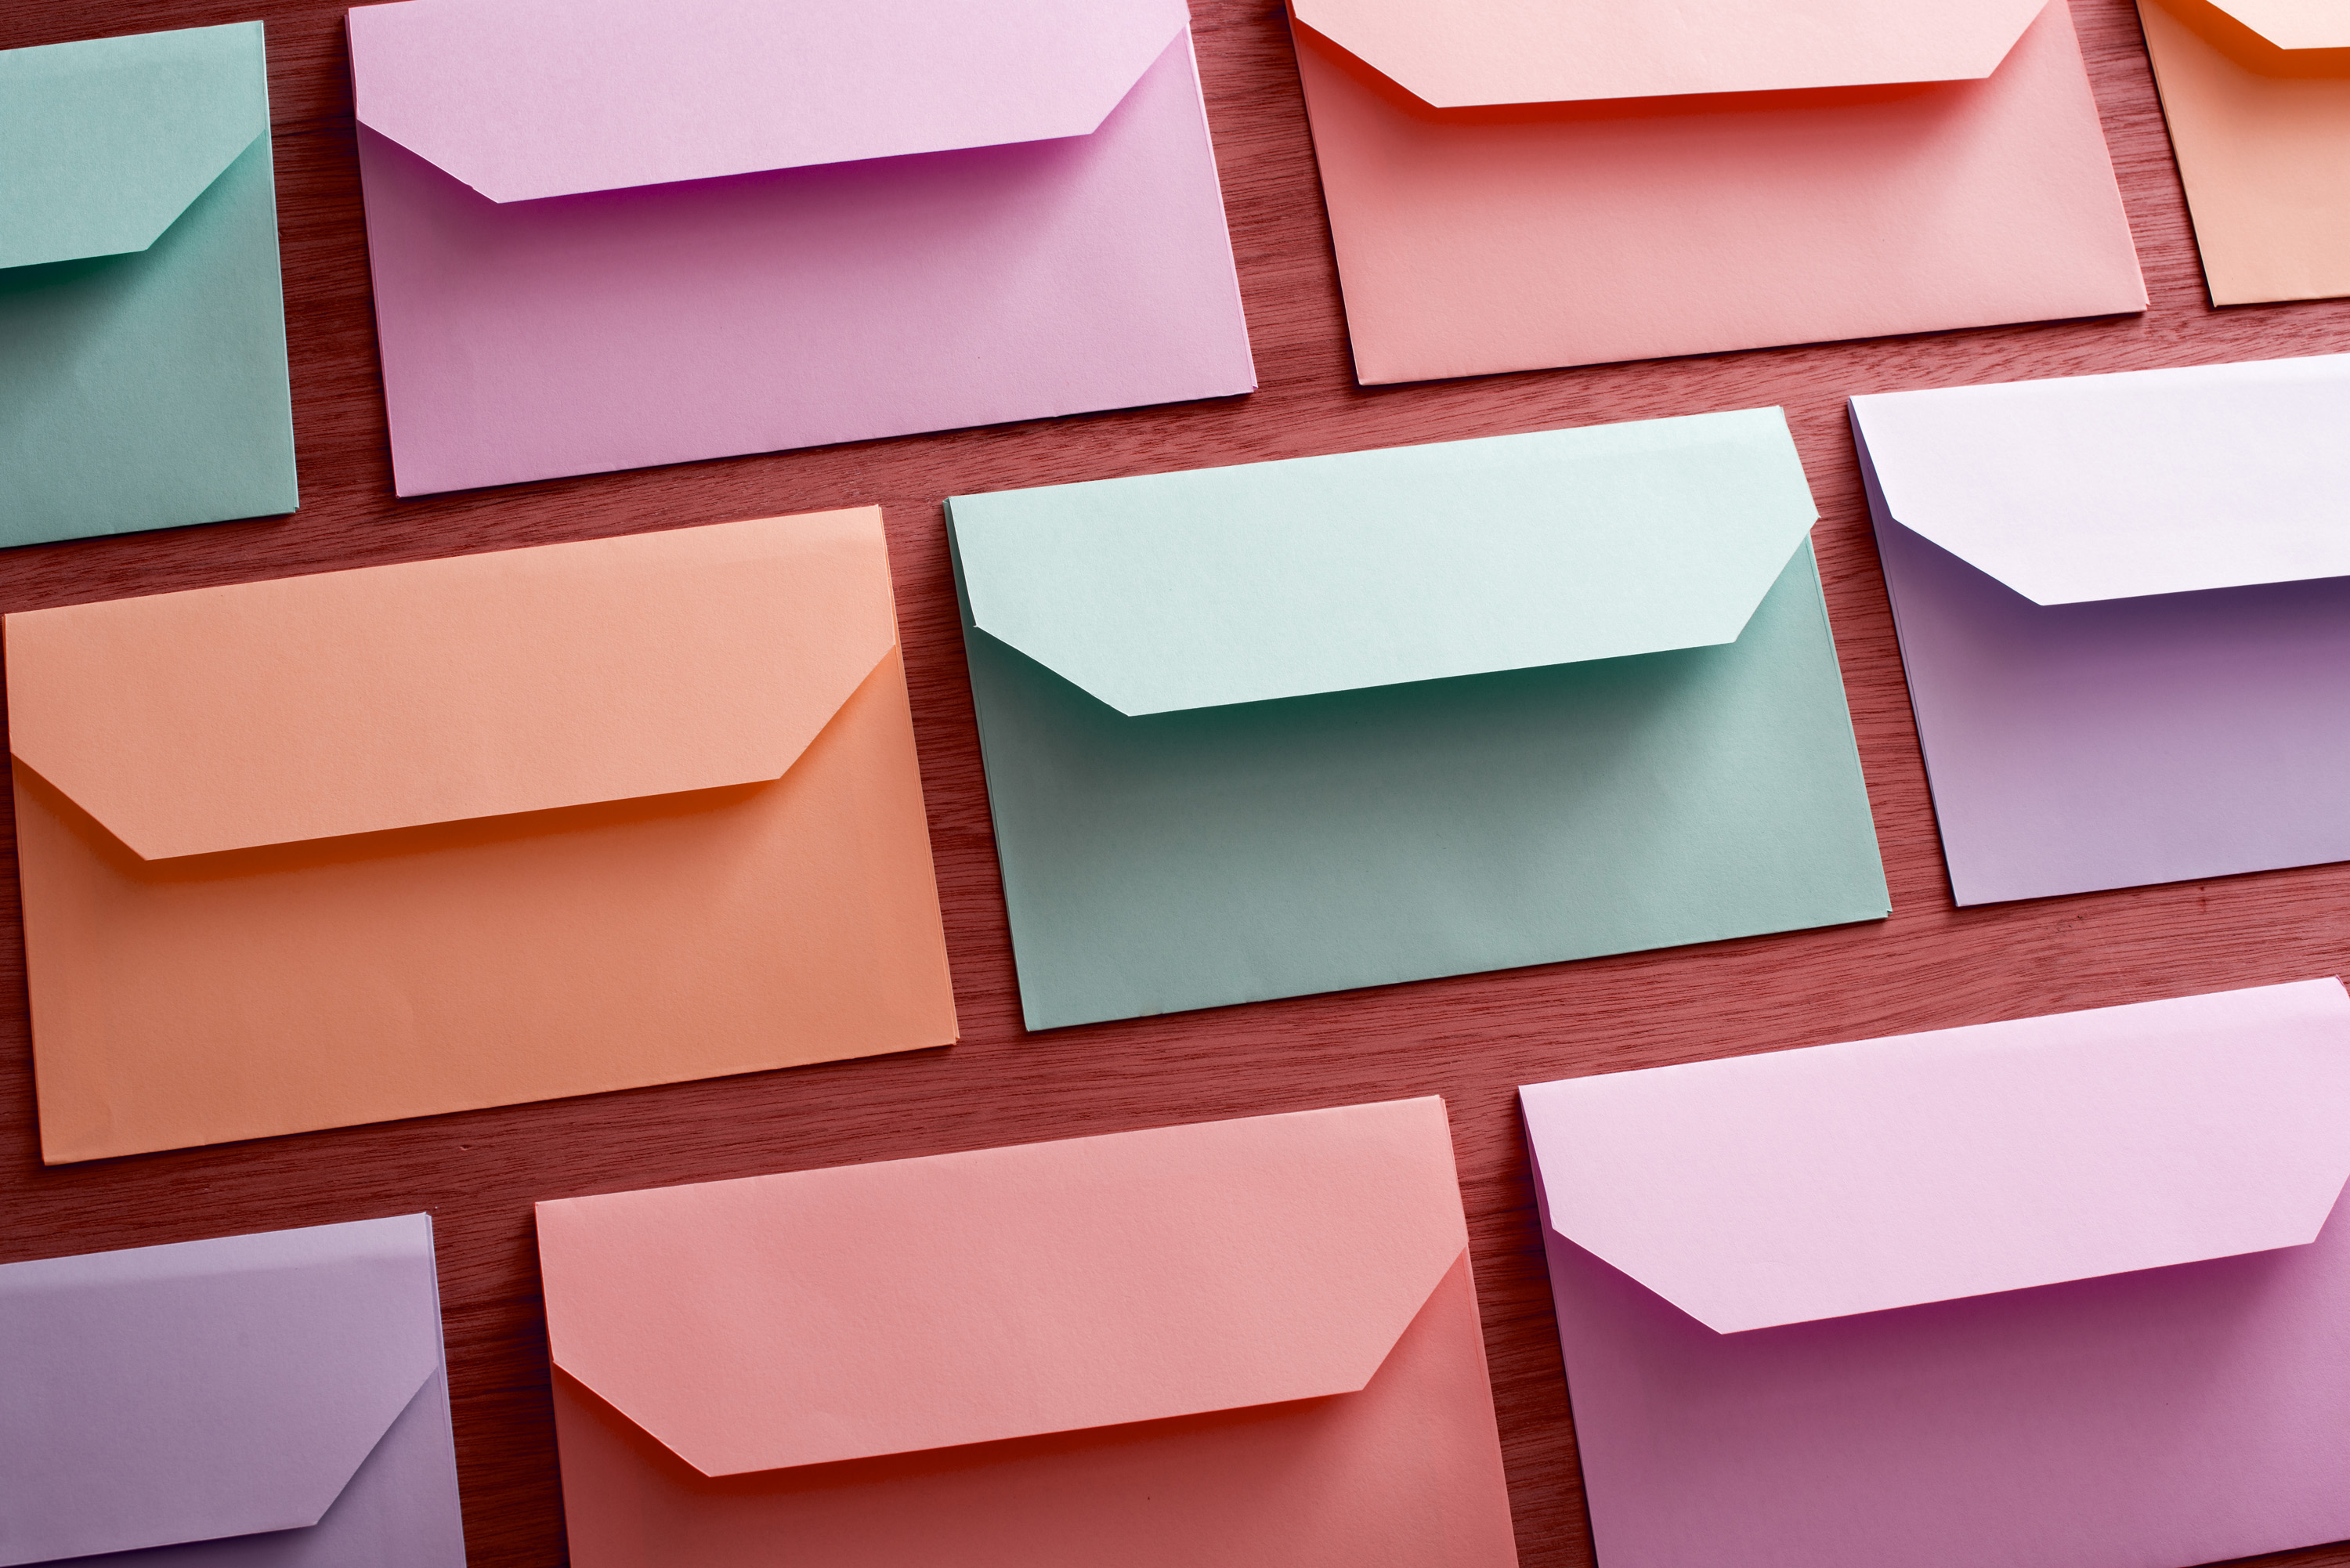 easter_colour_envelopes.jpg - Background of colorful envelopes for Easter messages arranged neatly in rows face down on wood in a full frame view